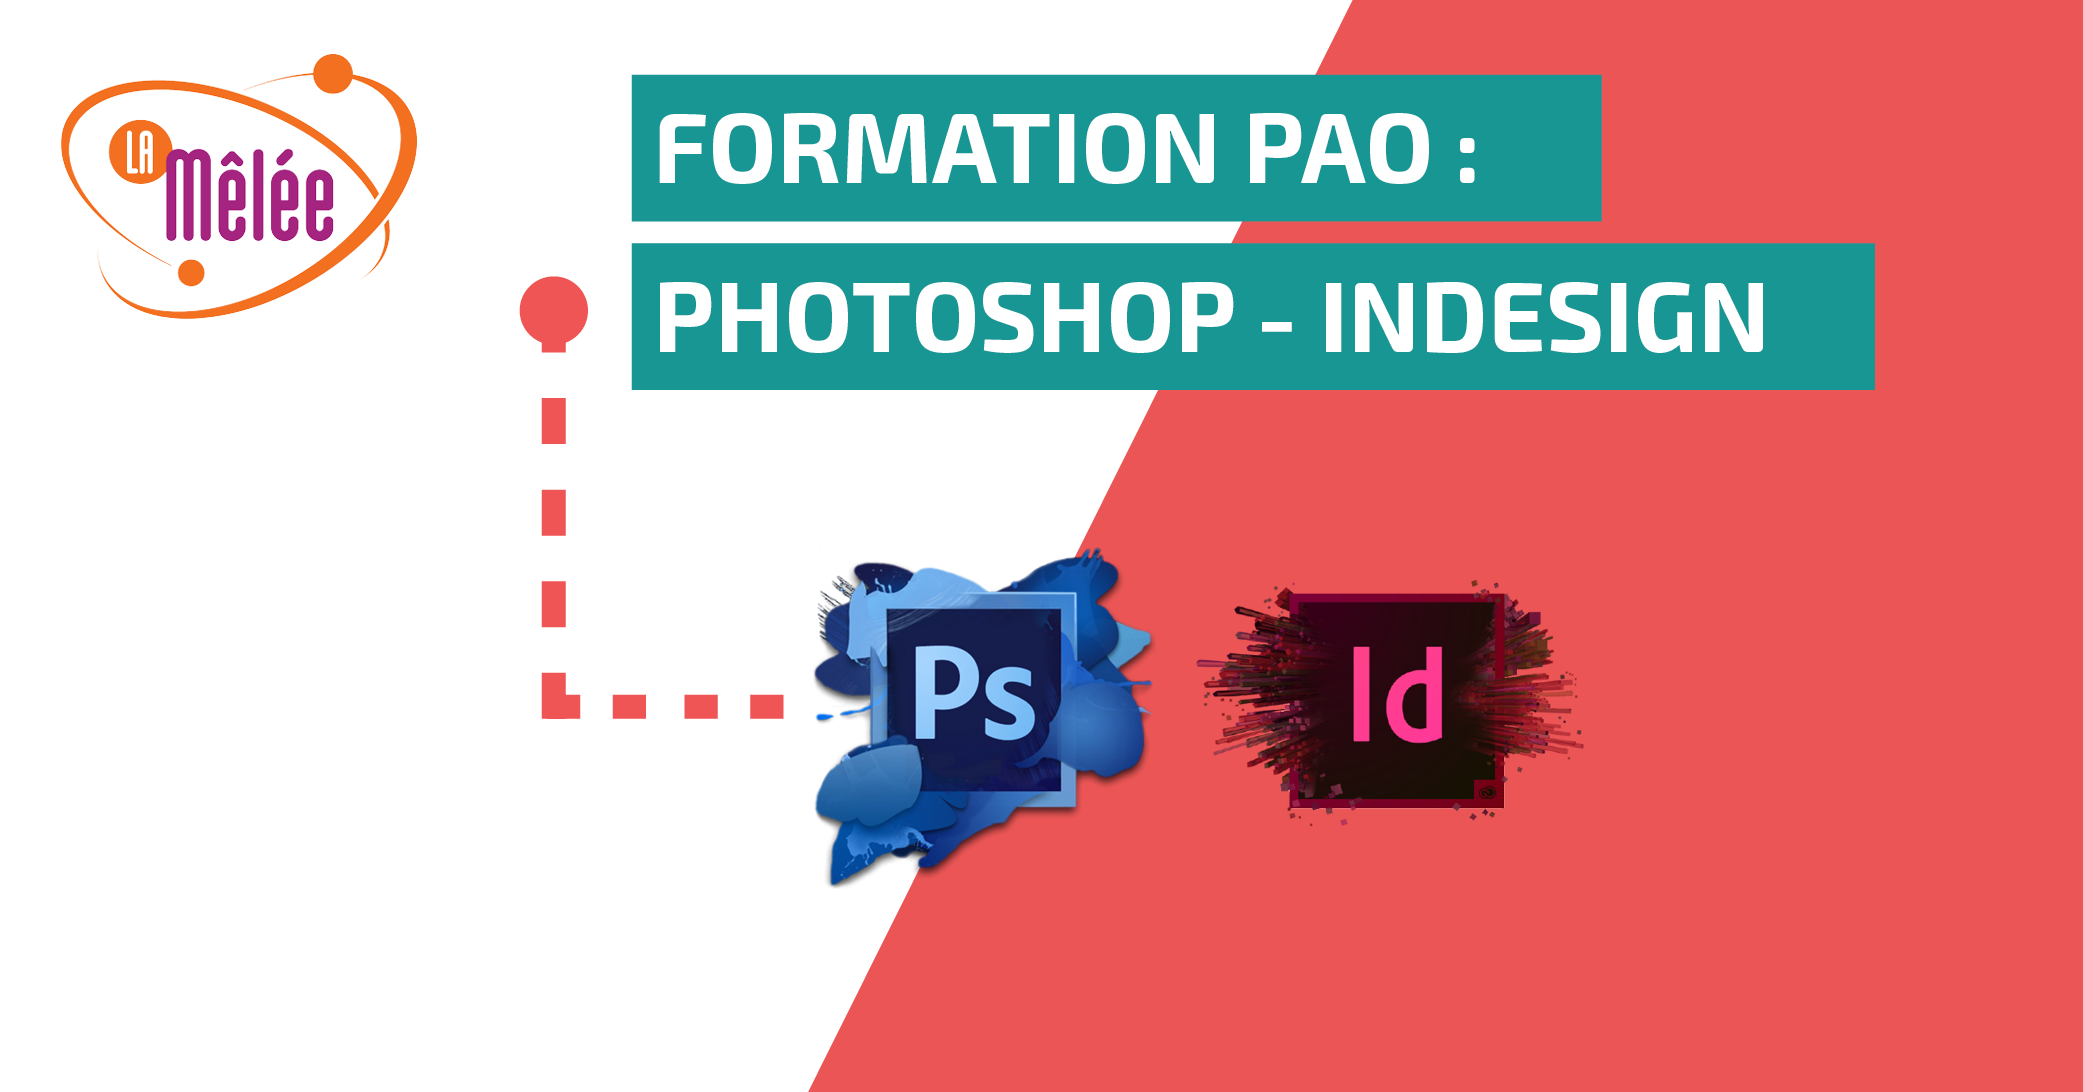 Formation PAO : Photoshop